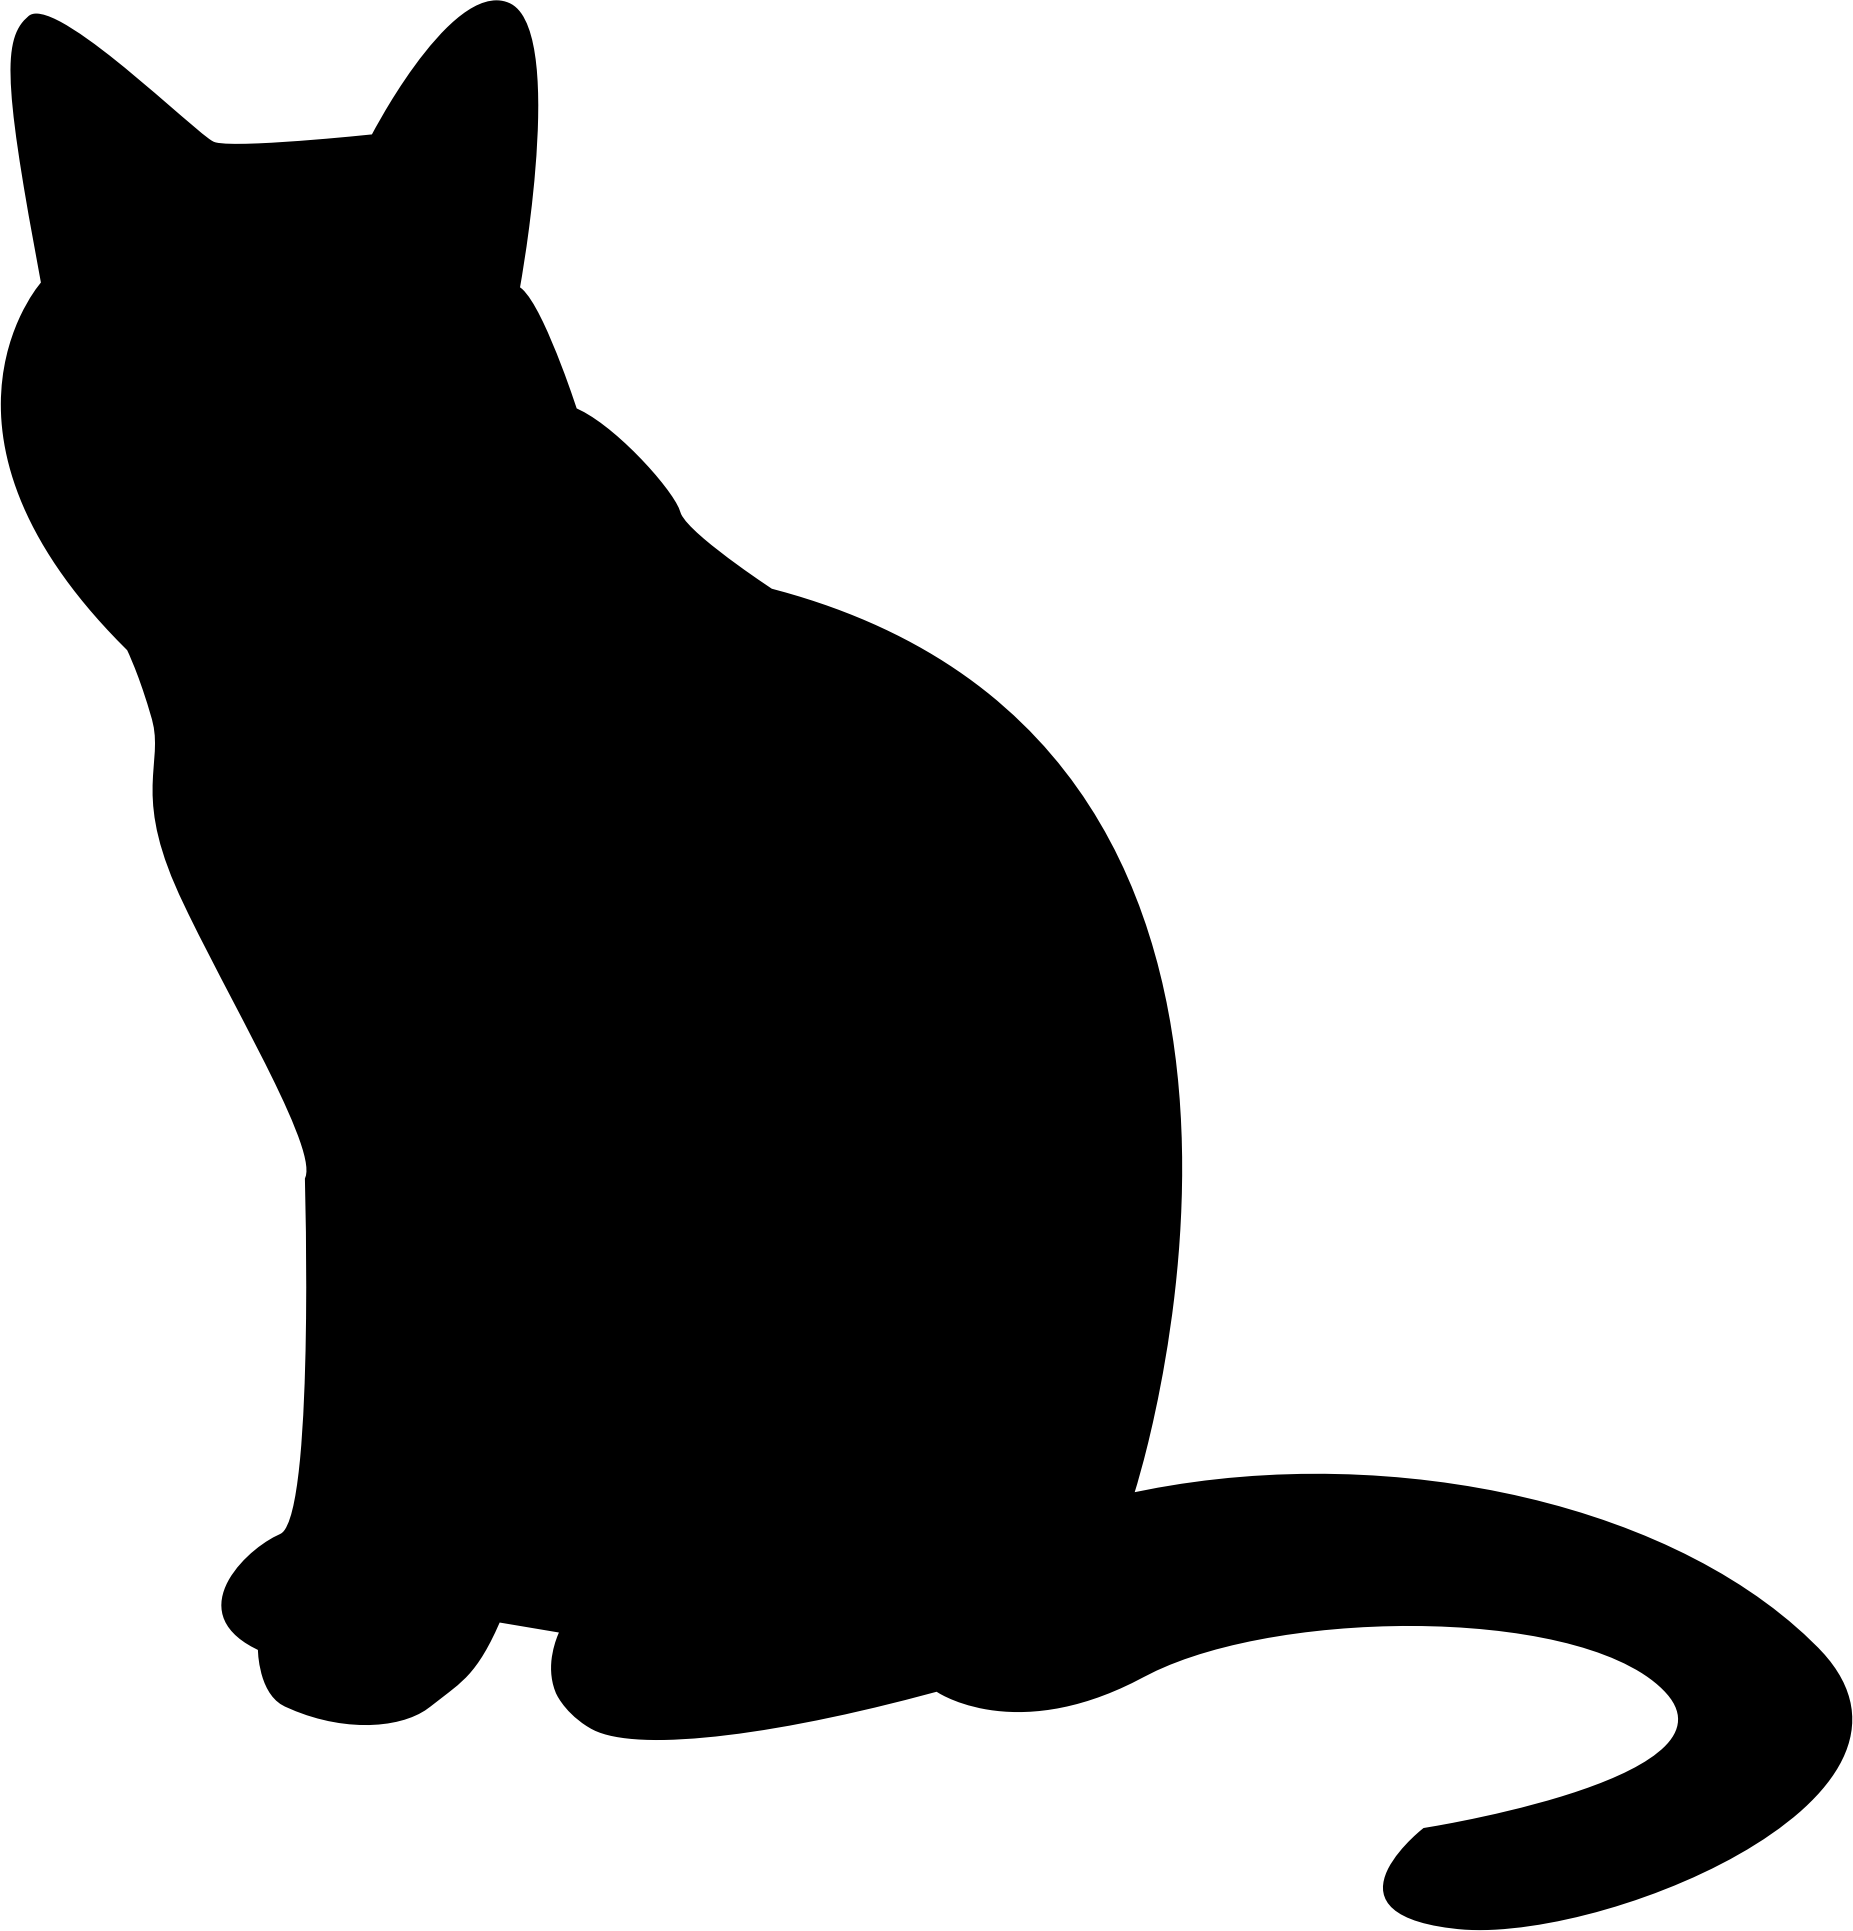 Cat arm png. Standing silhouette at getdrawings